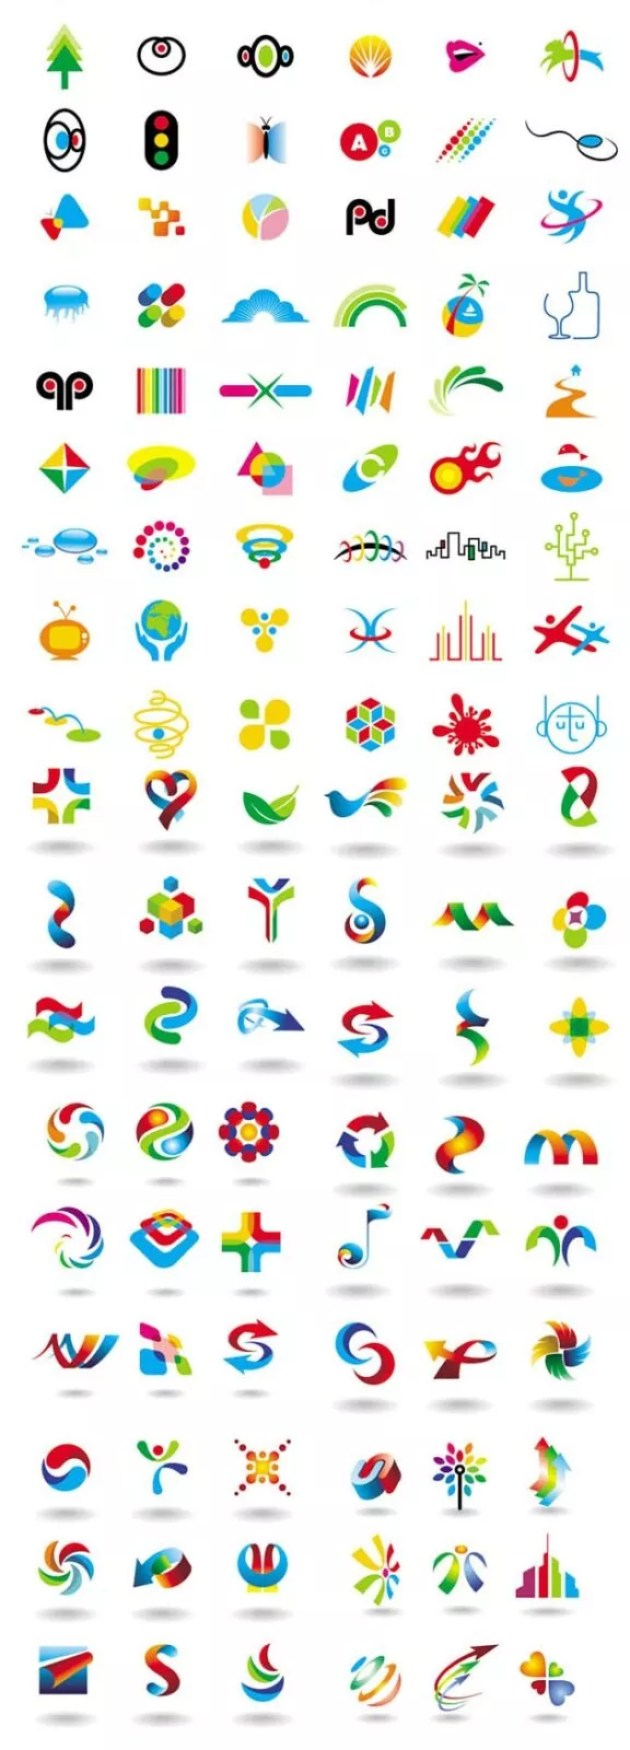 icons l - 100+ Web Icons Set Vector